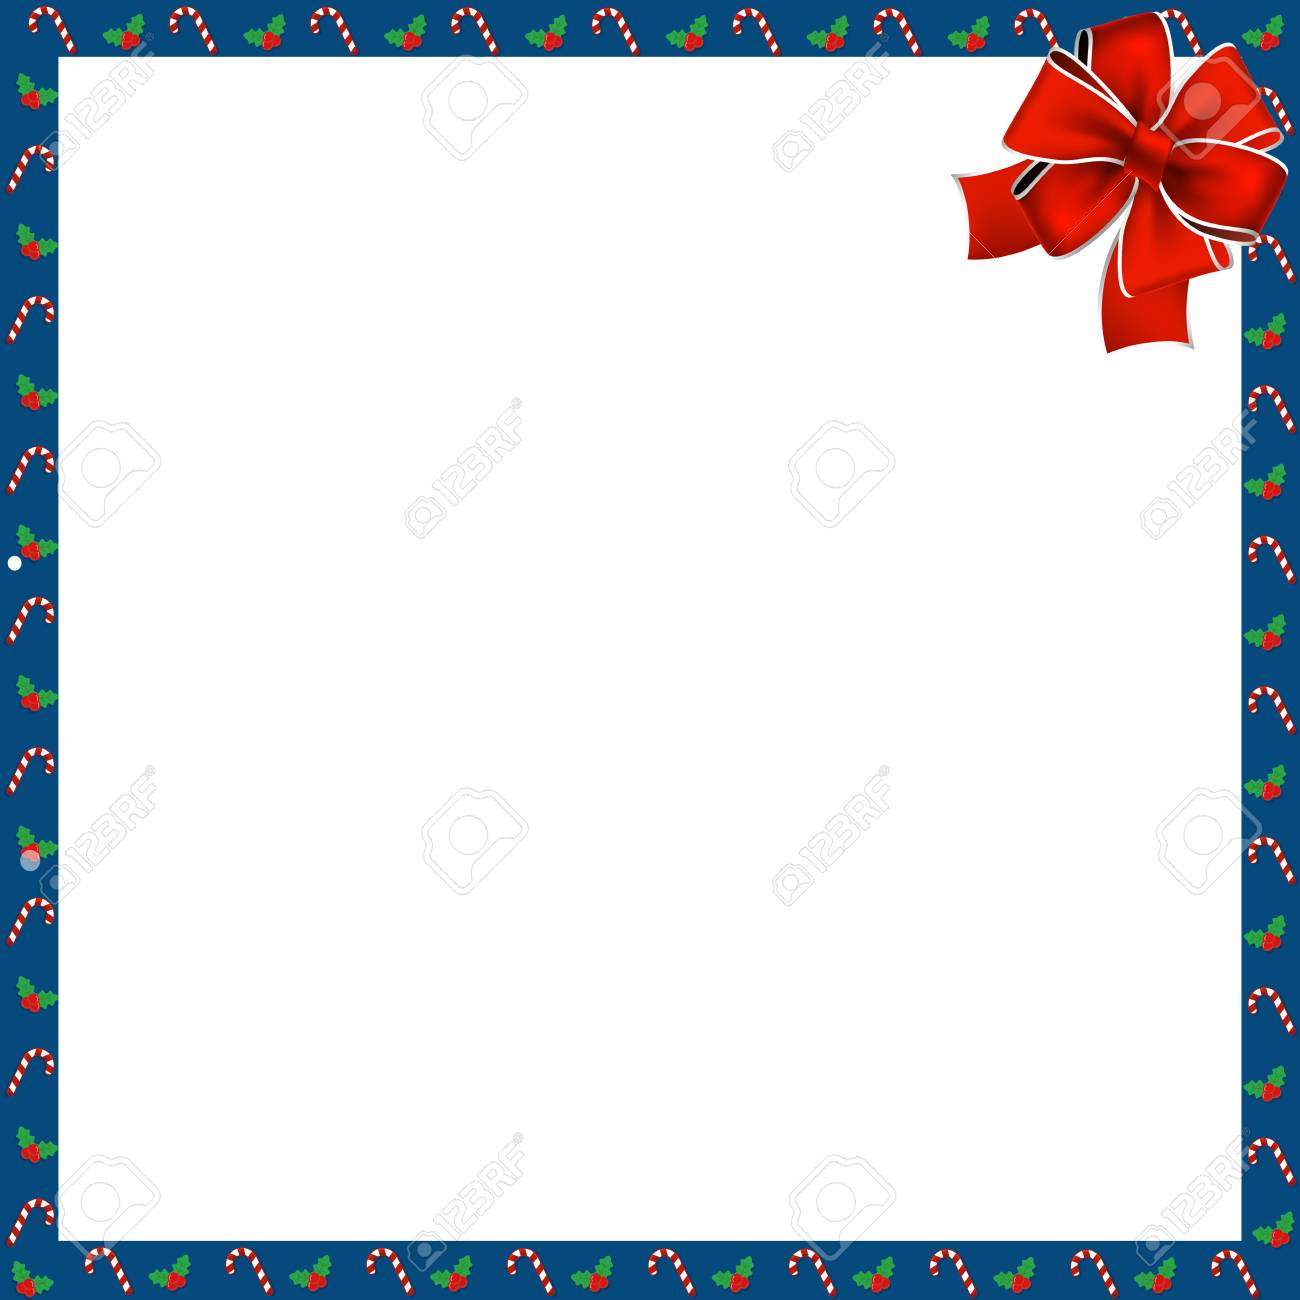 hight resolution of cute christmas or new year border with xmas candy cane and berries pattern and red festive